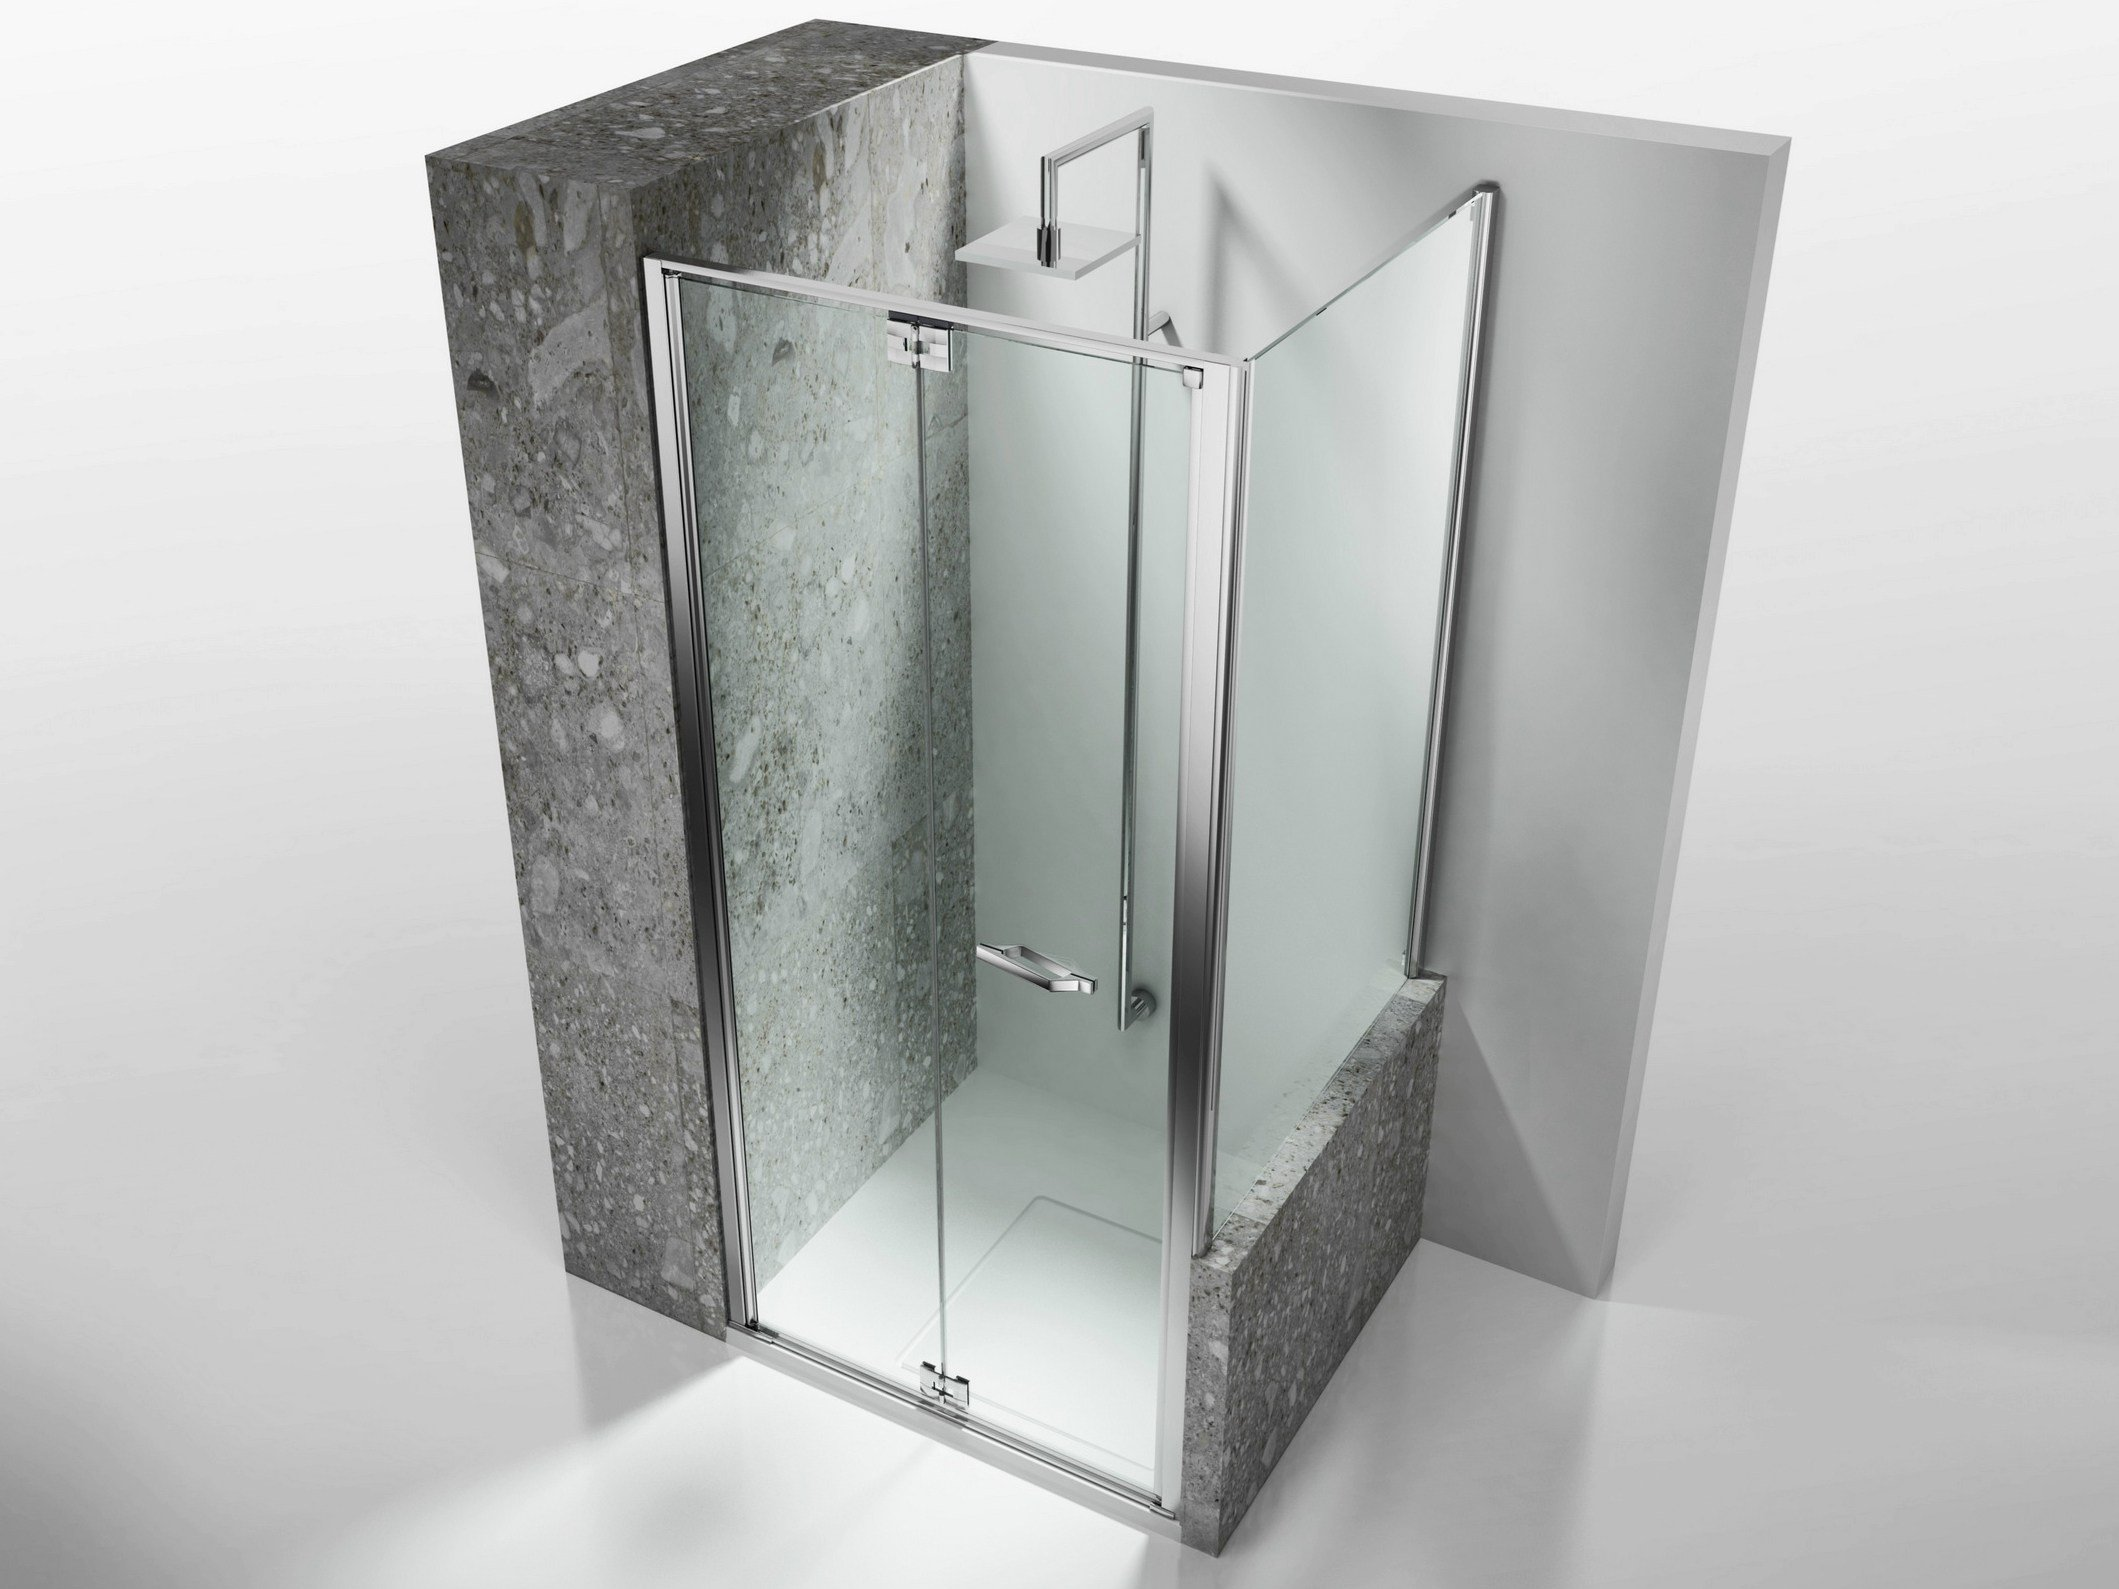 Paroi De Douche Sur Mesure En Verre Tremp Replay Rn Rv By Vismaravetro Design Centro Progetti